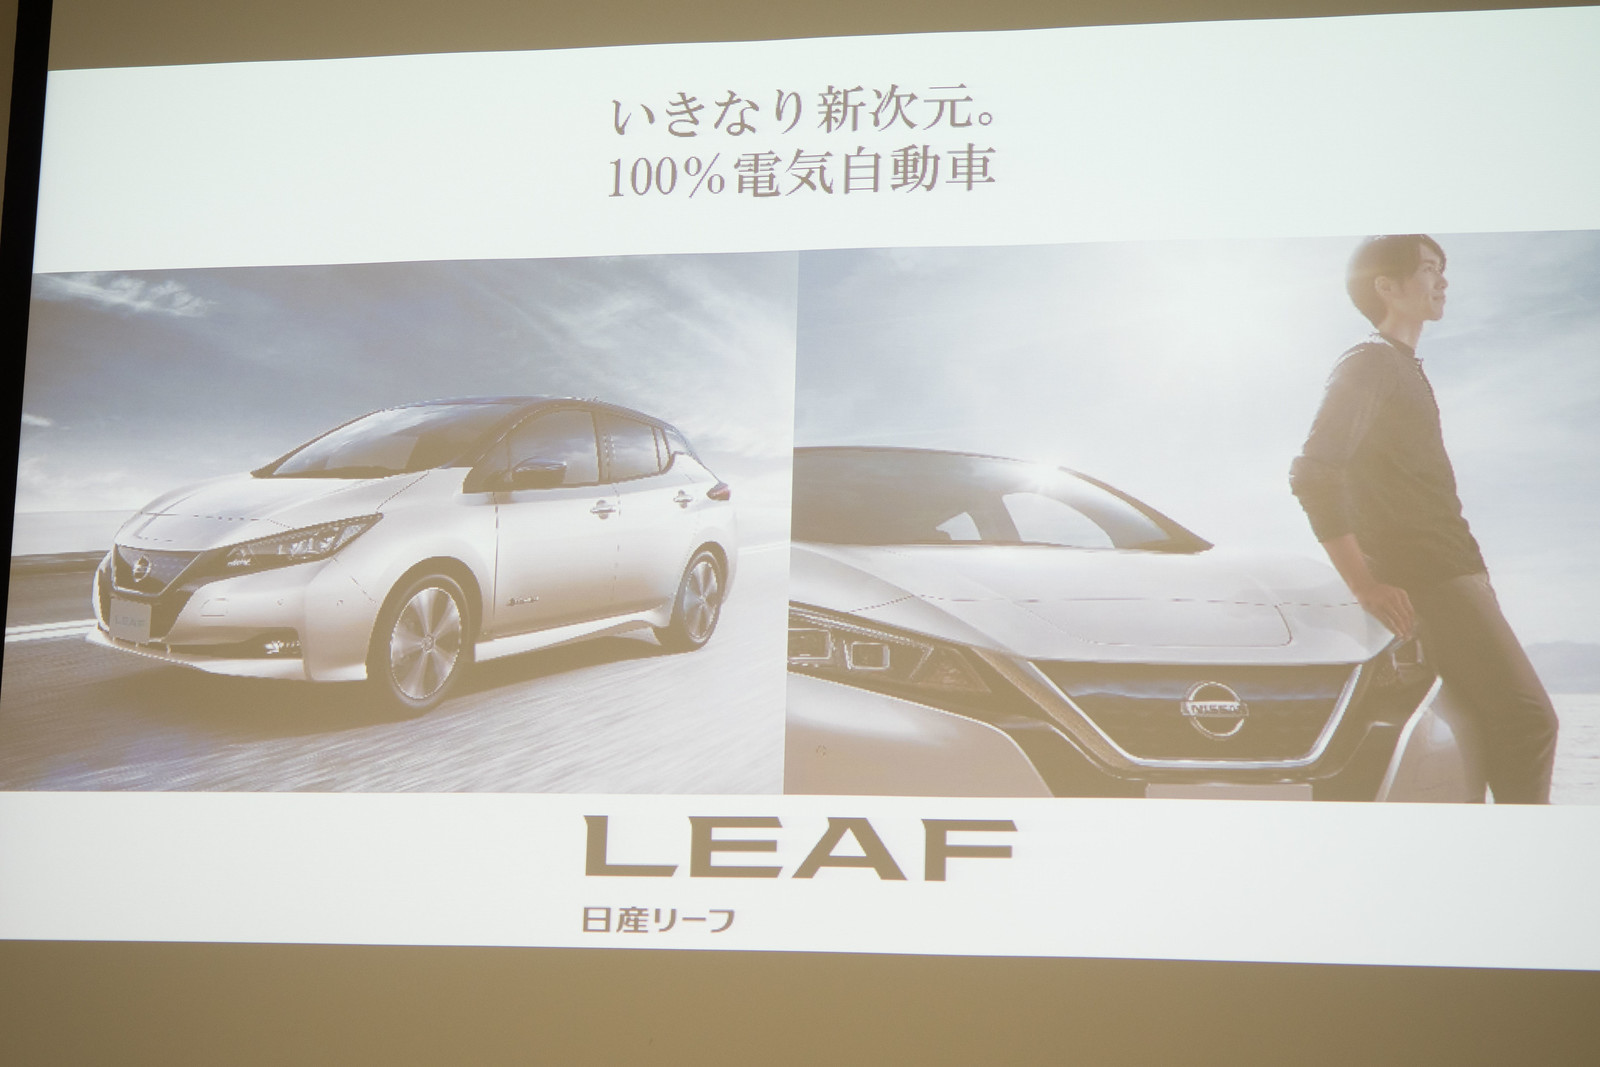 Nissan_Intelligent_Mobility-6